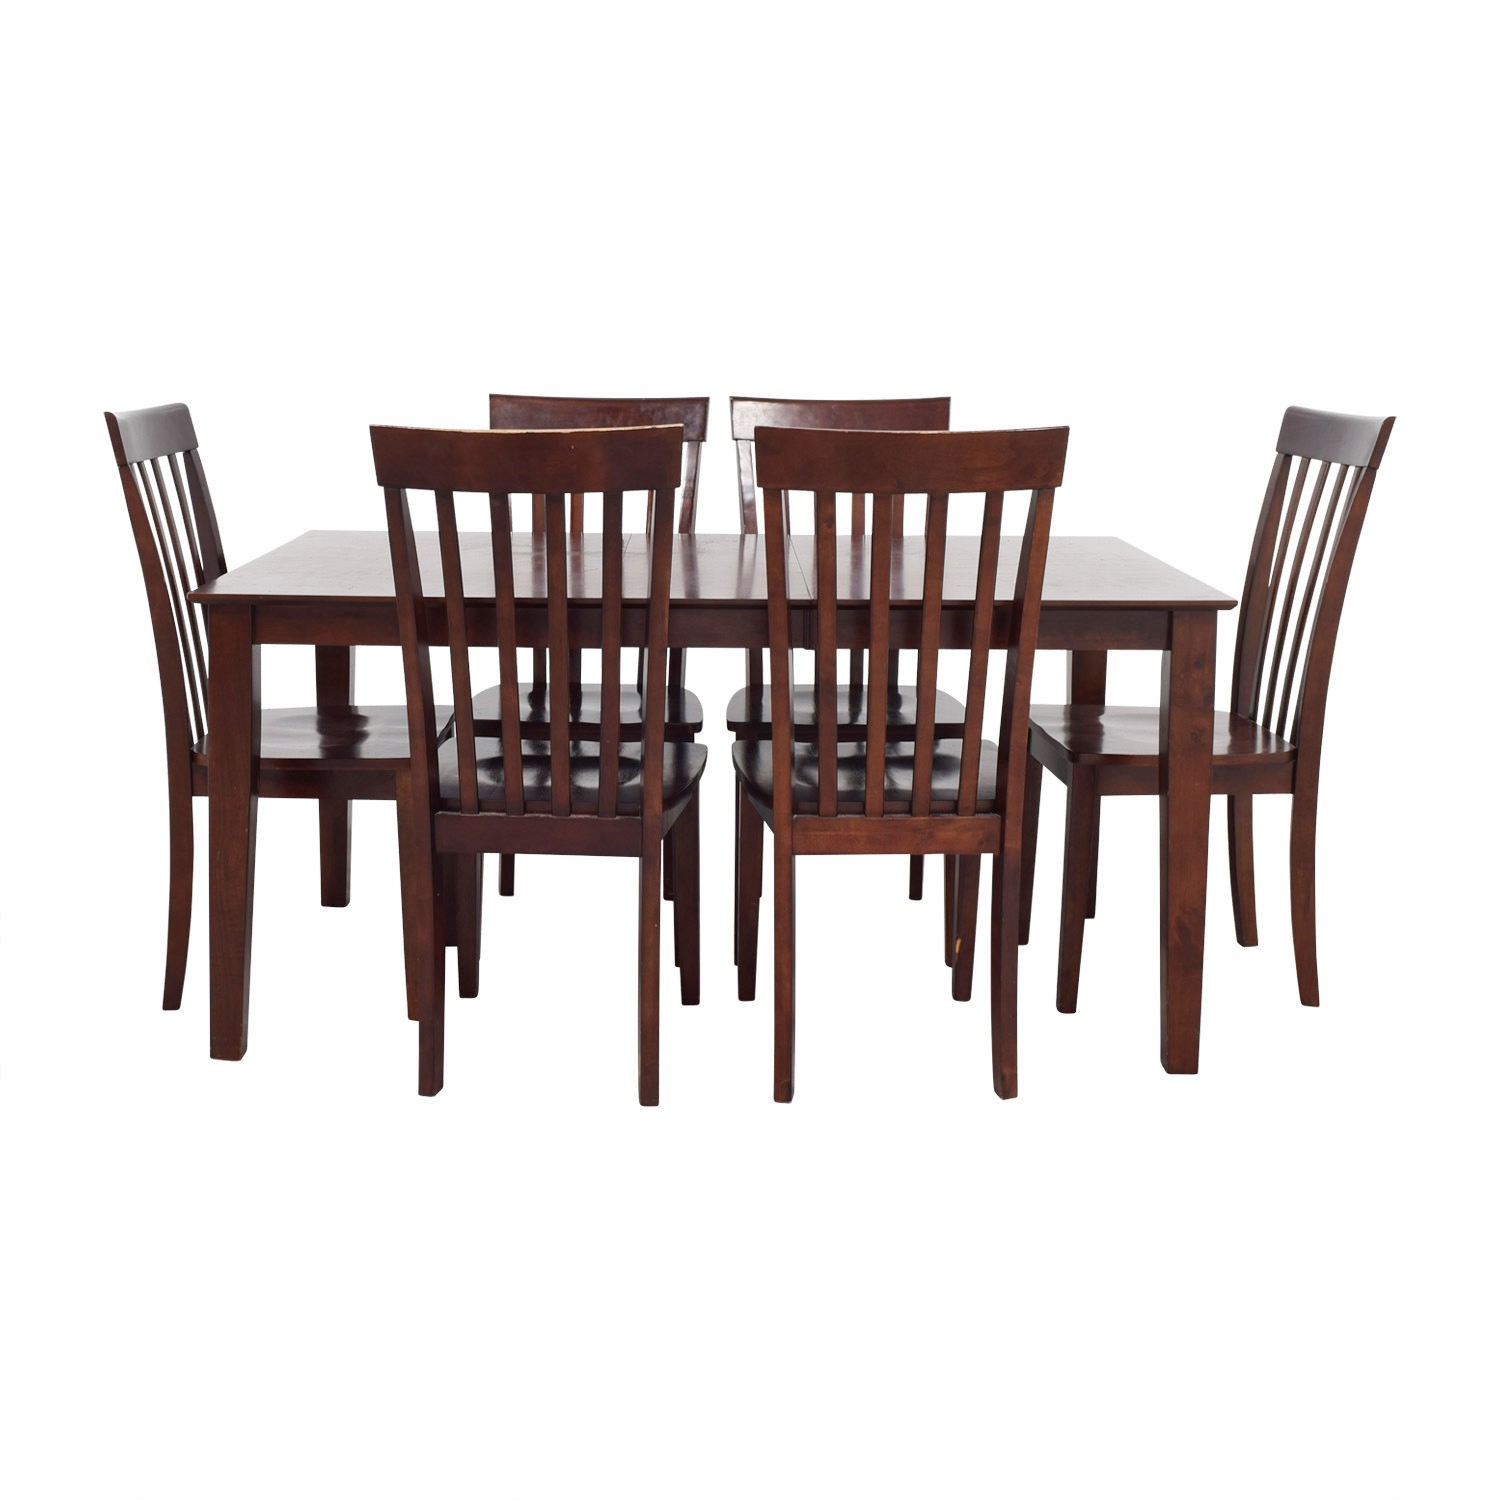 89 Off Bob S Discount Furniture Bob S Furniture Dining Room Table